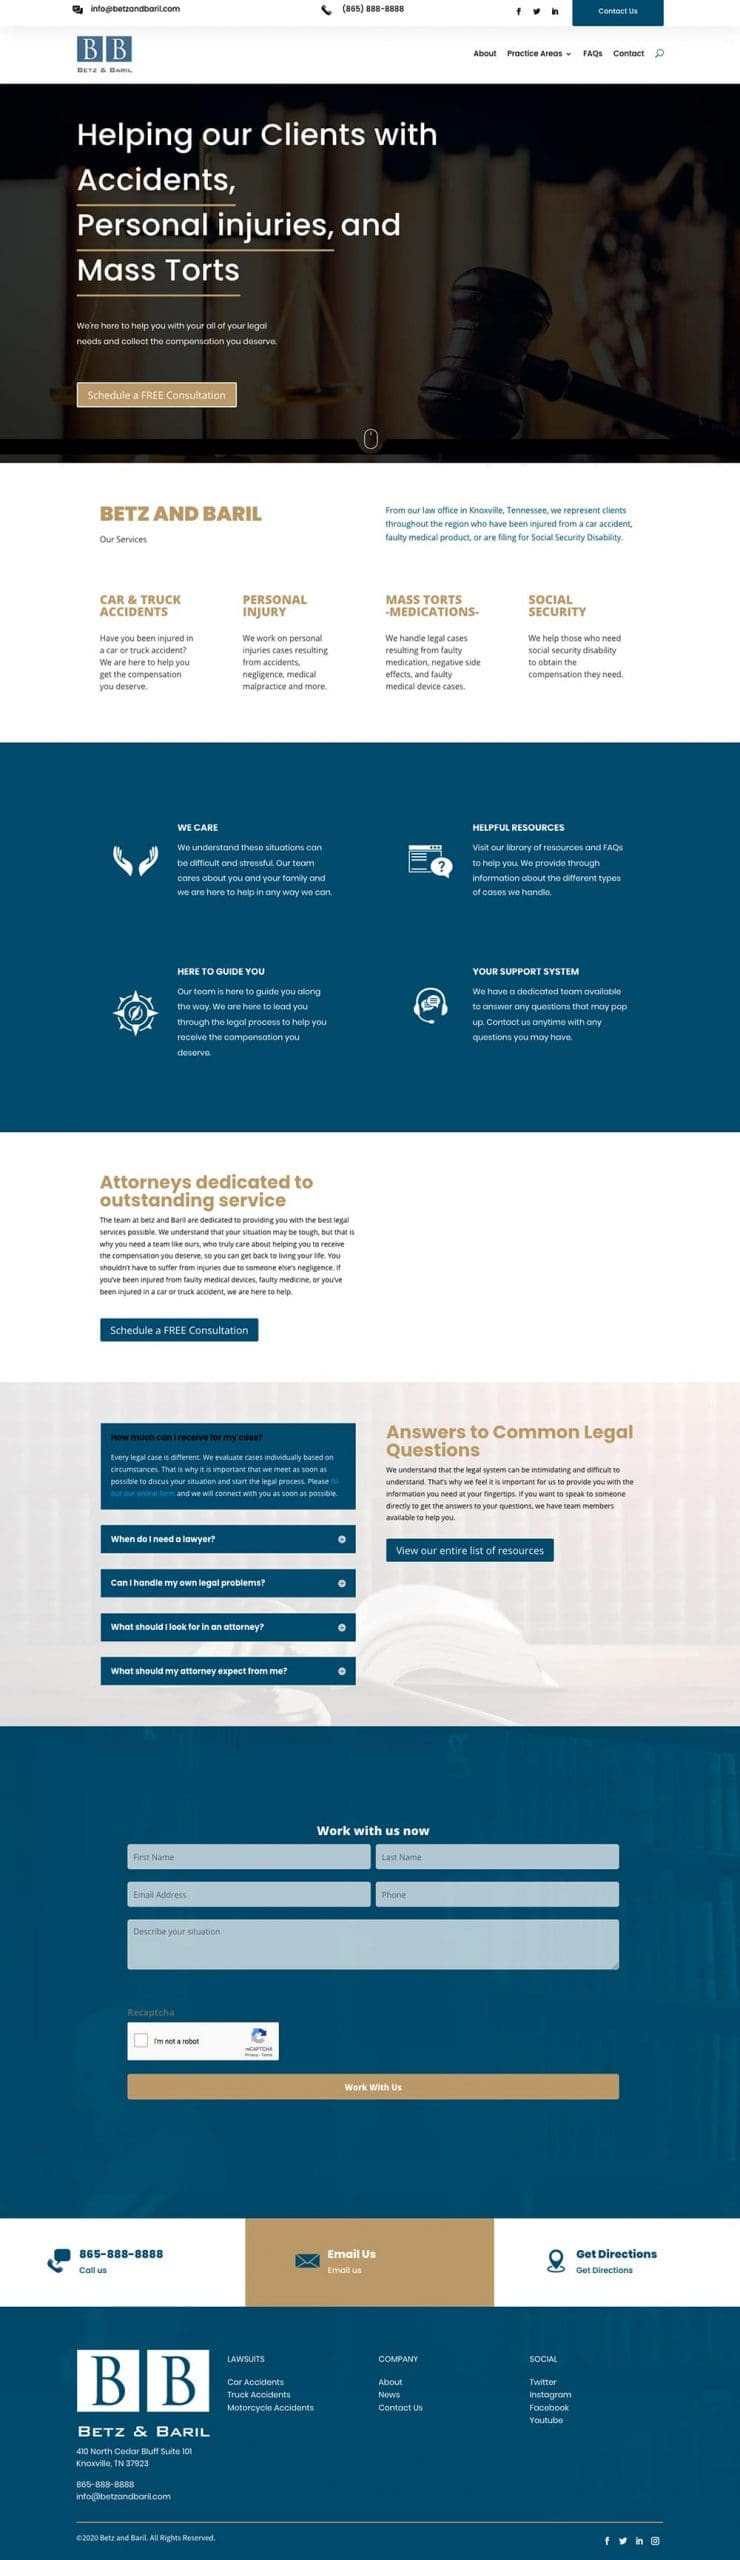 betz-and-baril-law-firm-website-scaled